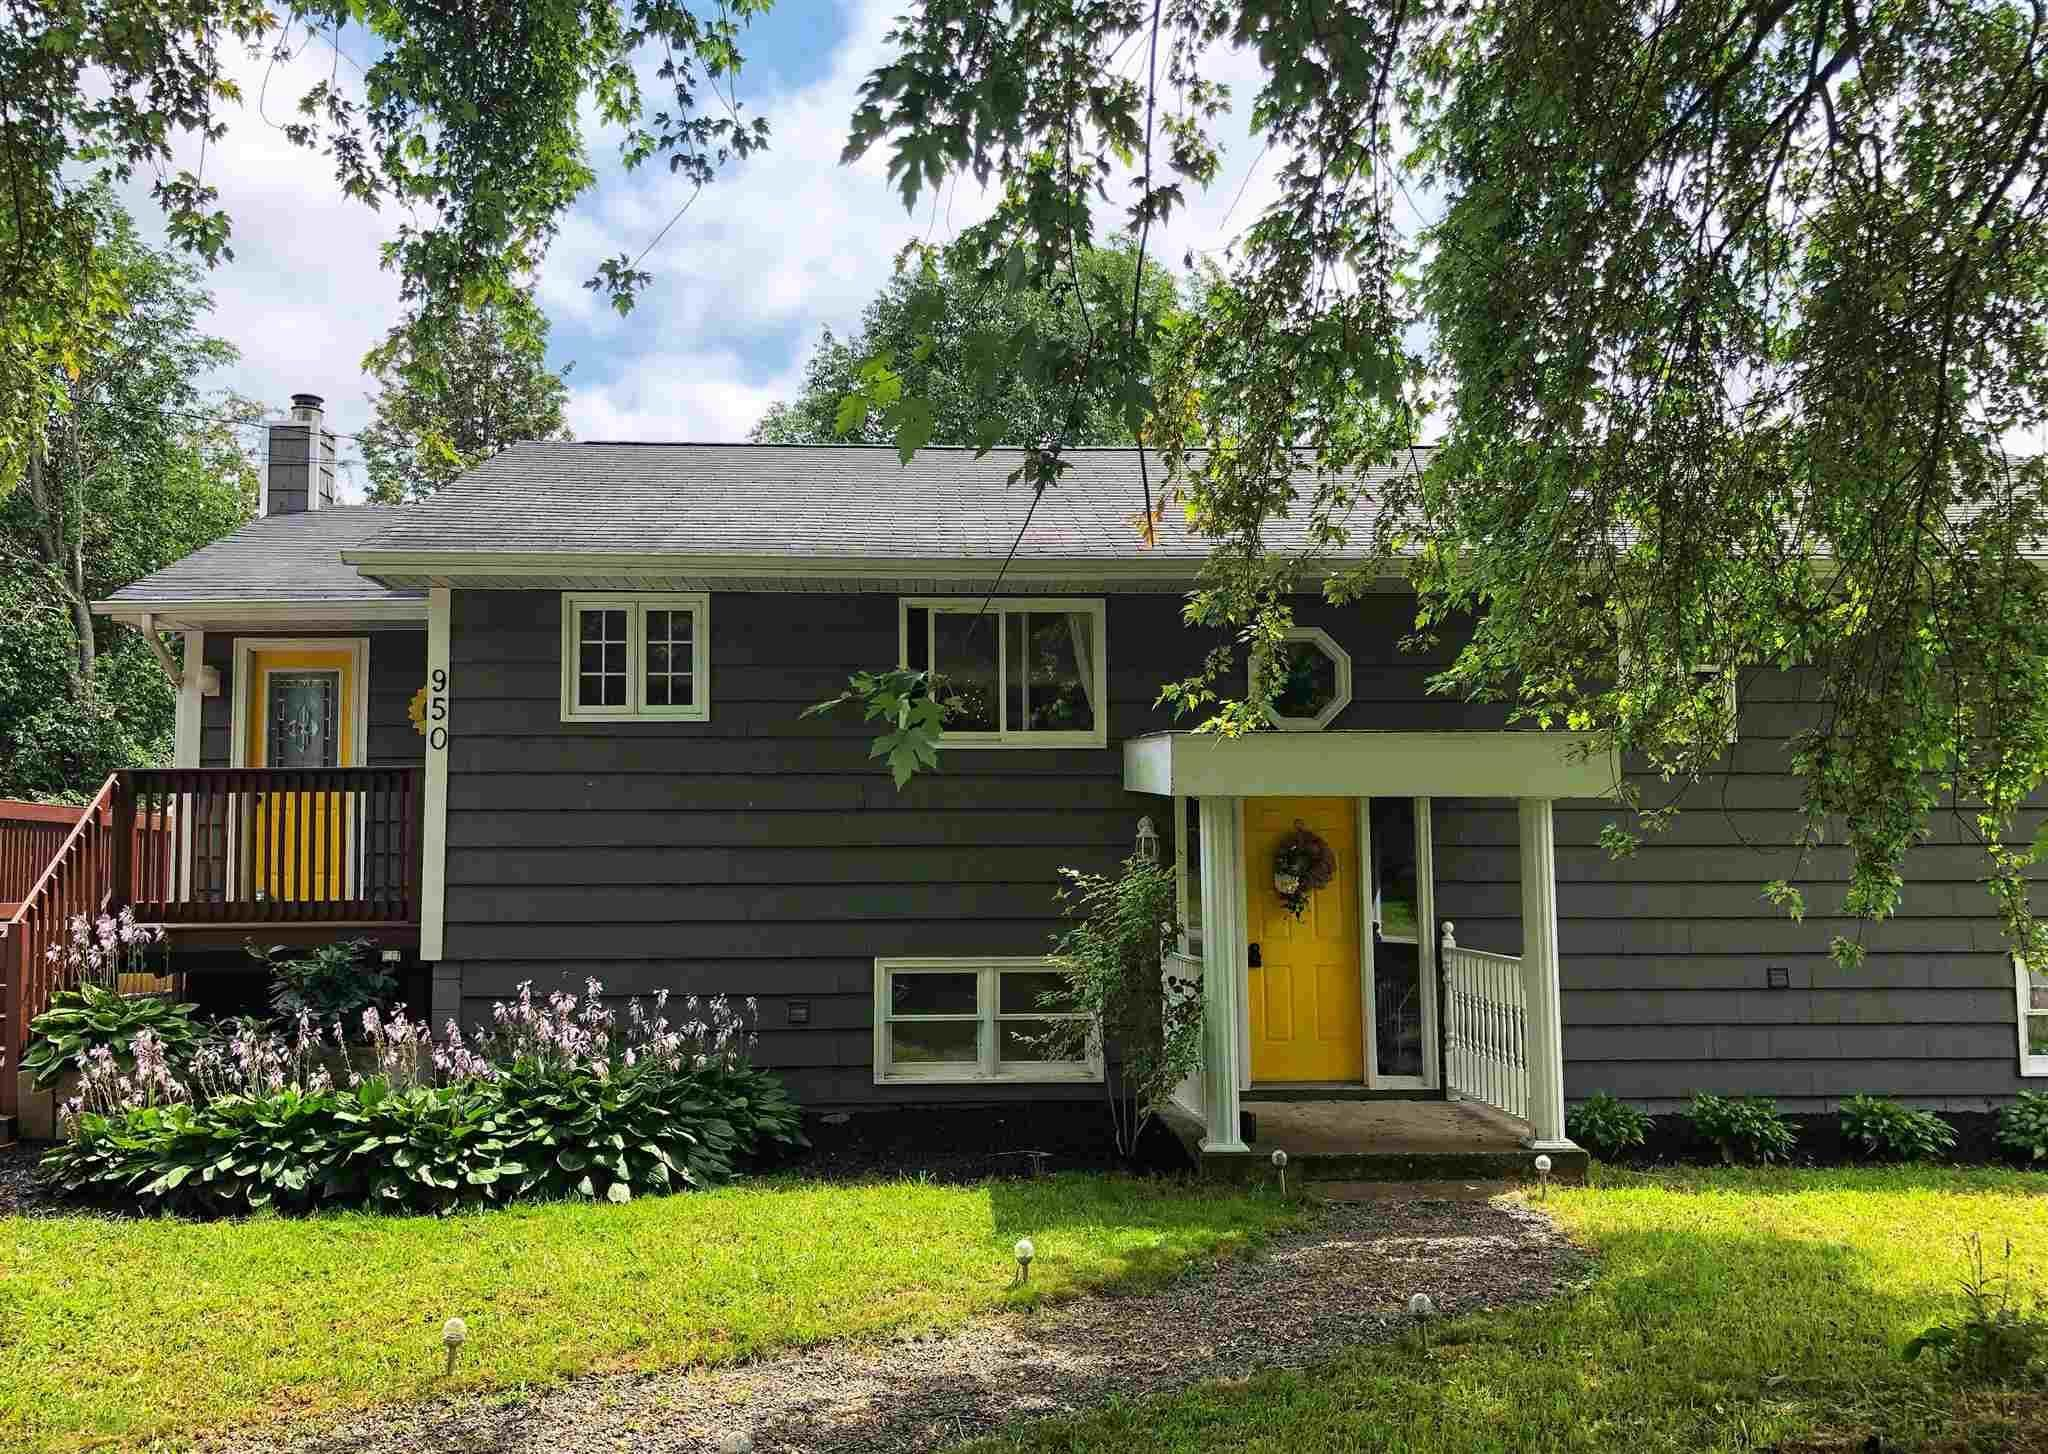 Main Photo: 950 Highway 341 in Upper Dyke: 404-Kings County Residential for sale (Annapolis Valley)  : MLS®# 202120938